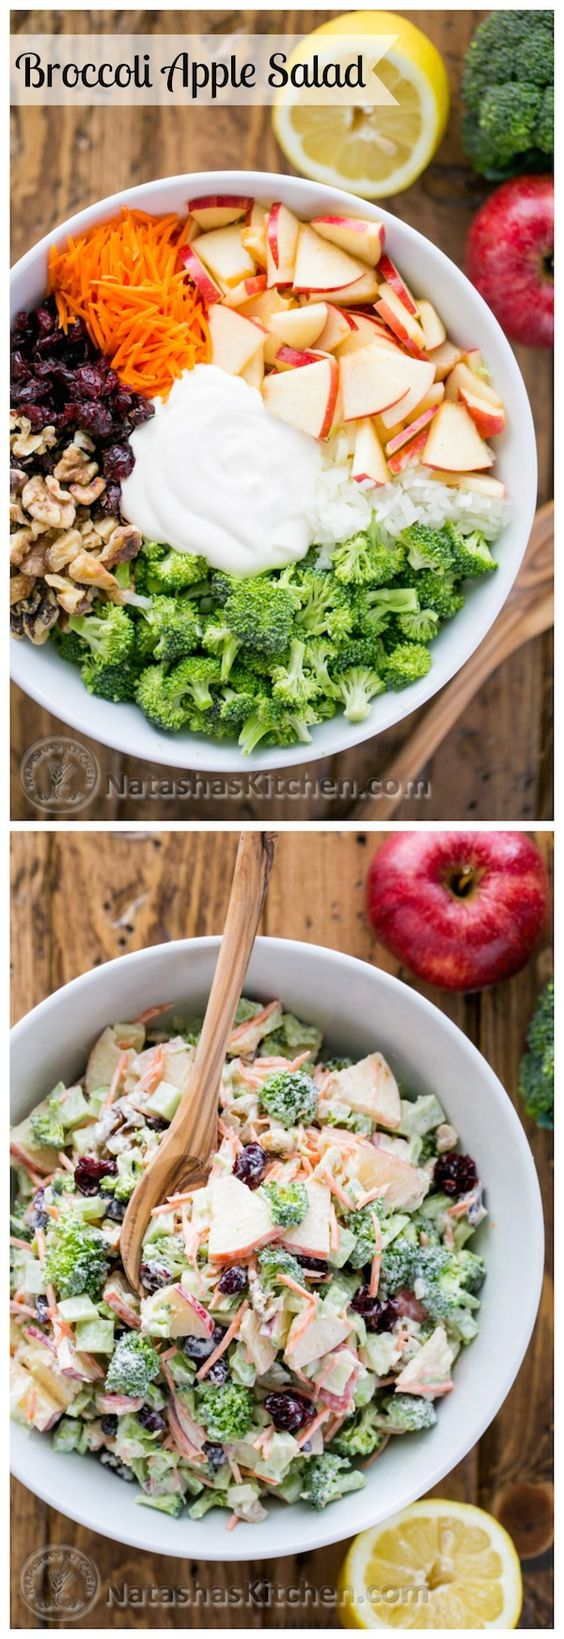 Broccoli and Apple Salad with a Creamy Lemon Dressing. Add chicken for a complete meal. #charlottepediatricclinic